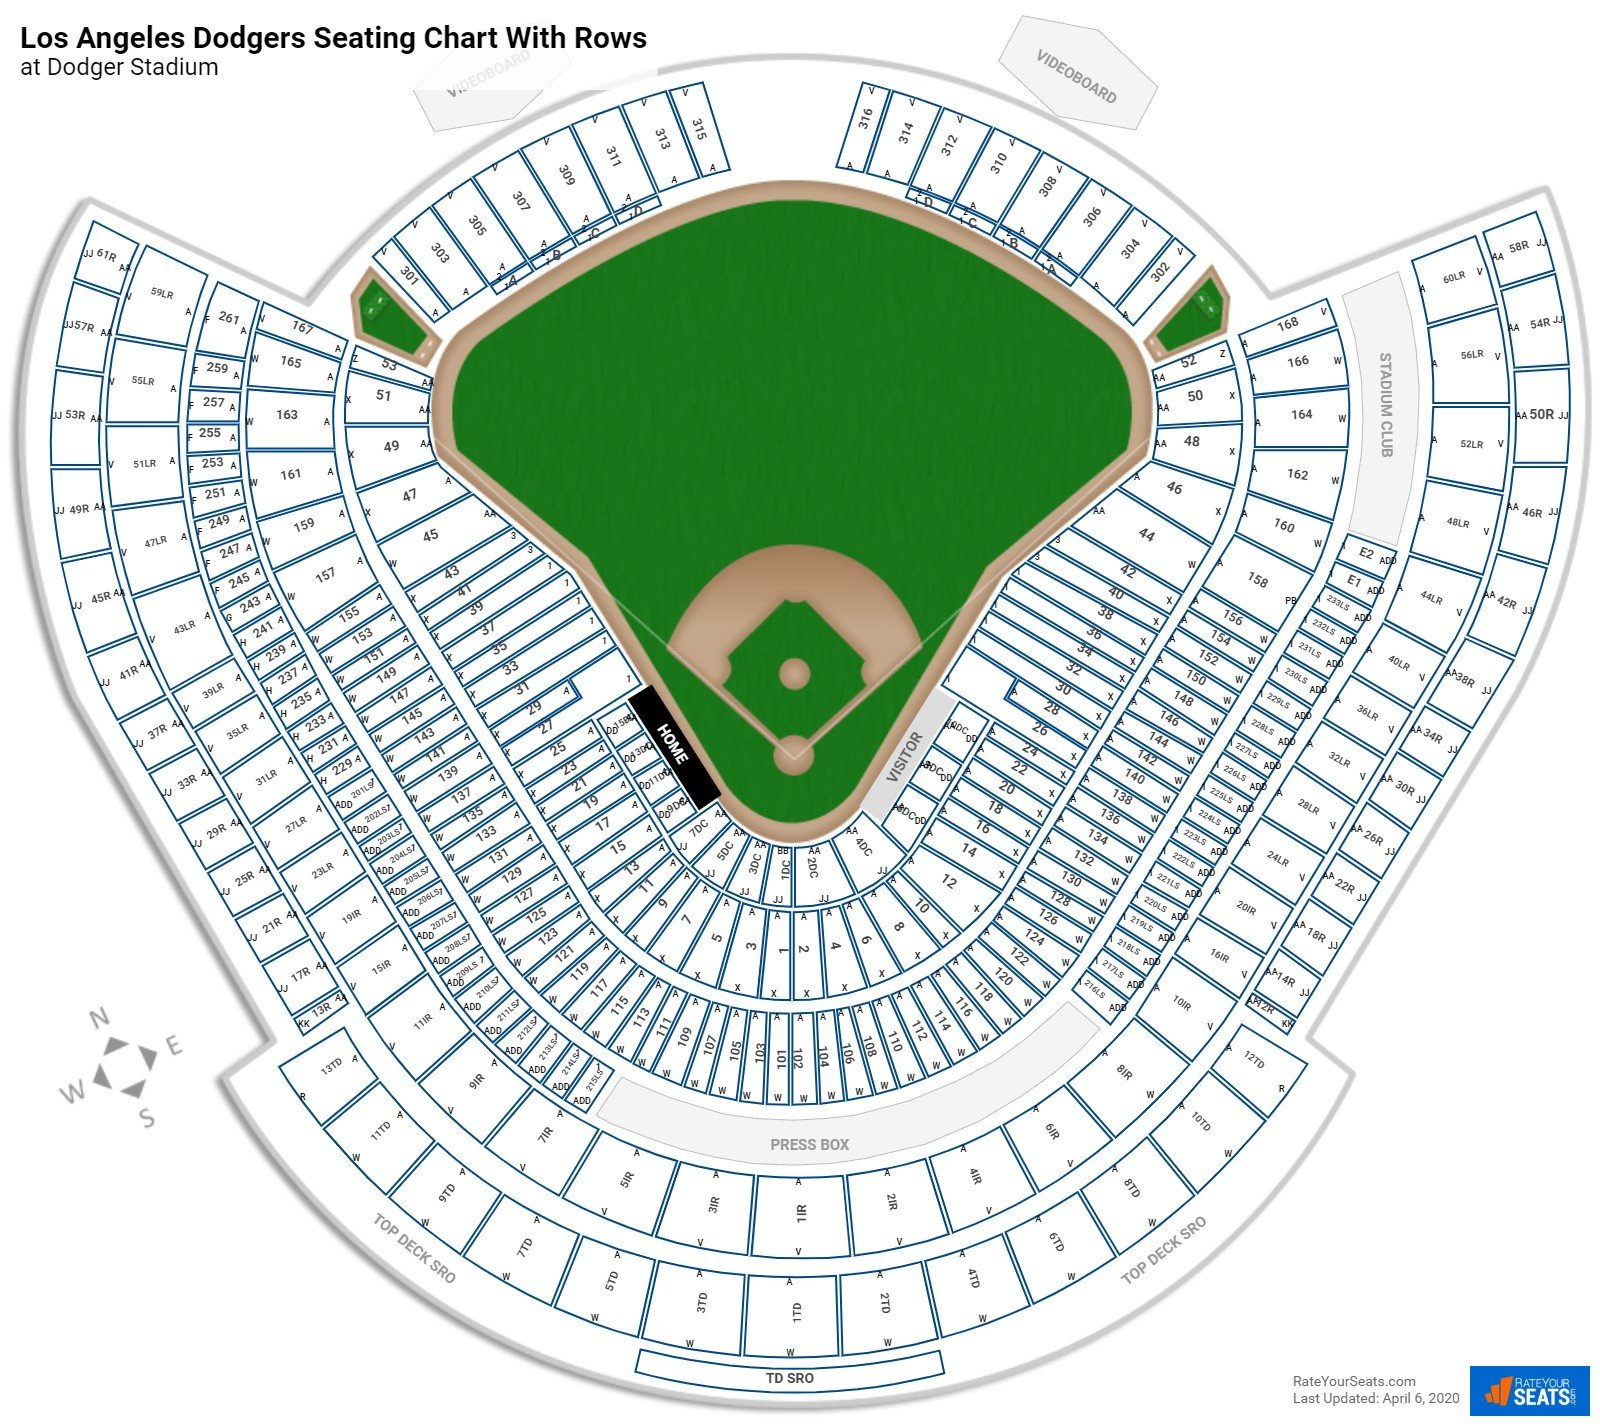 Dodger Stadium seating chart with rows